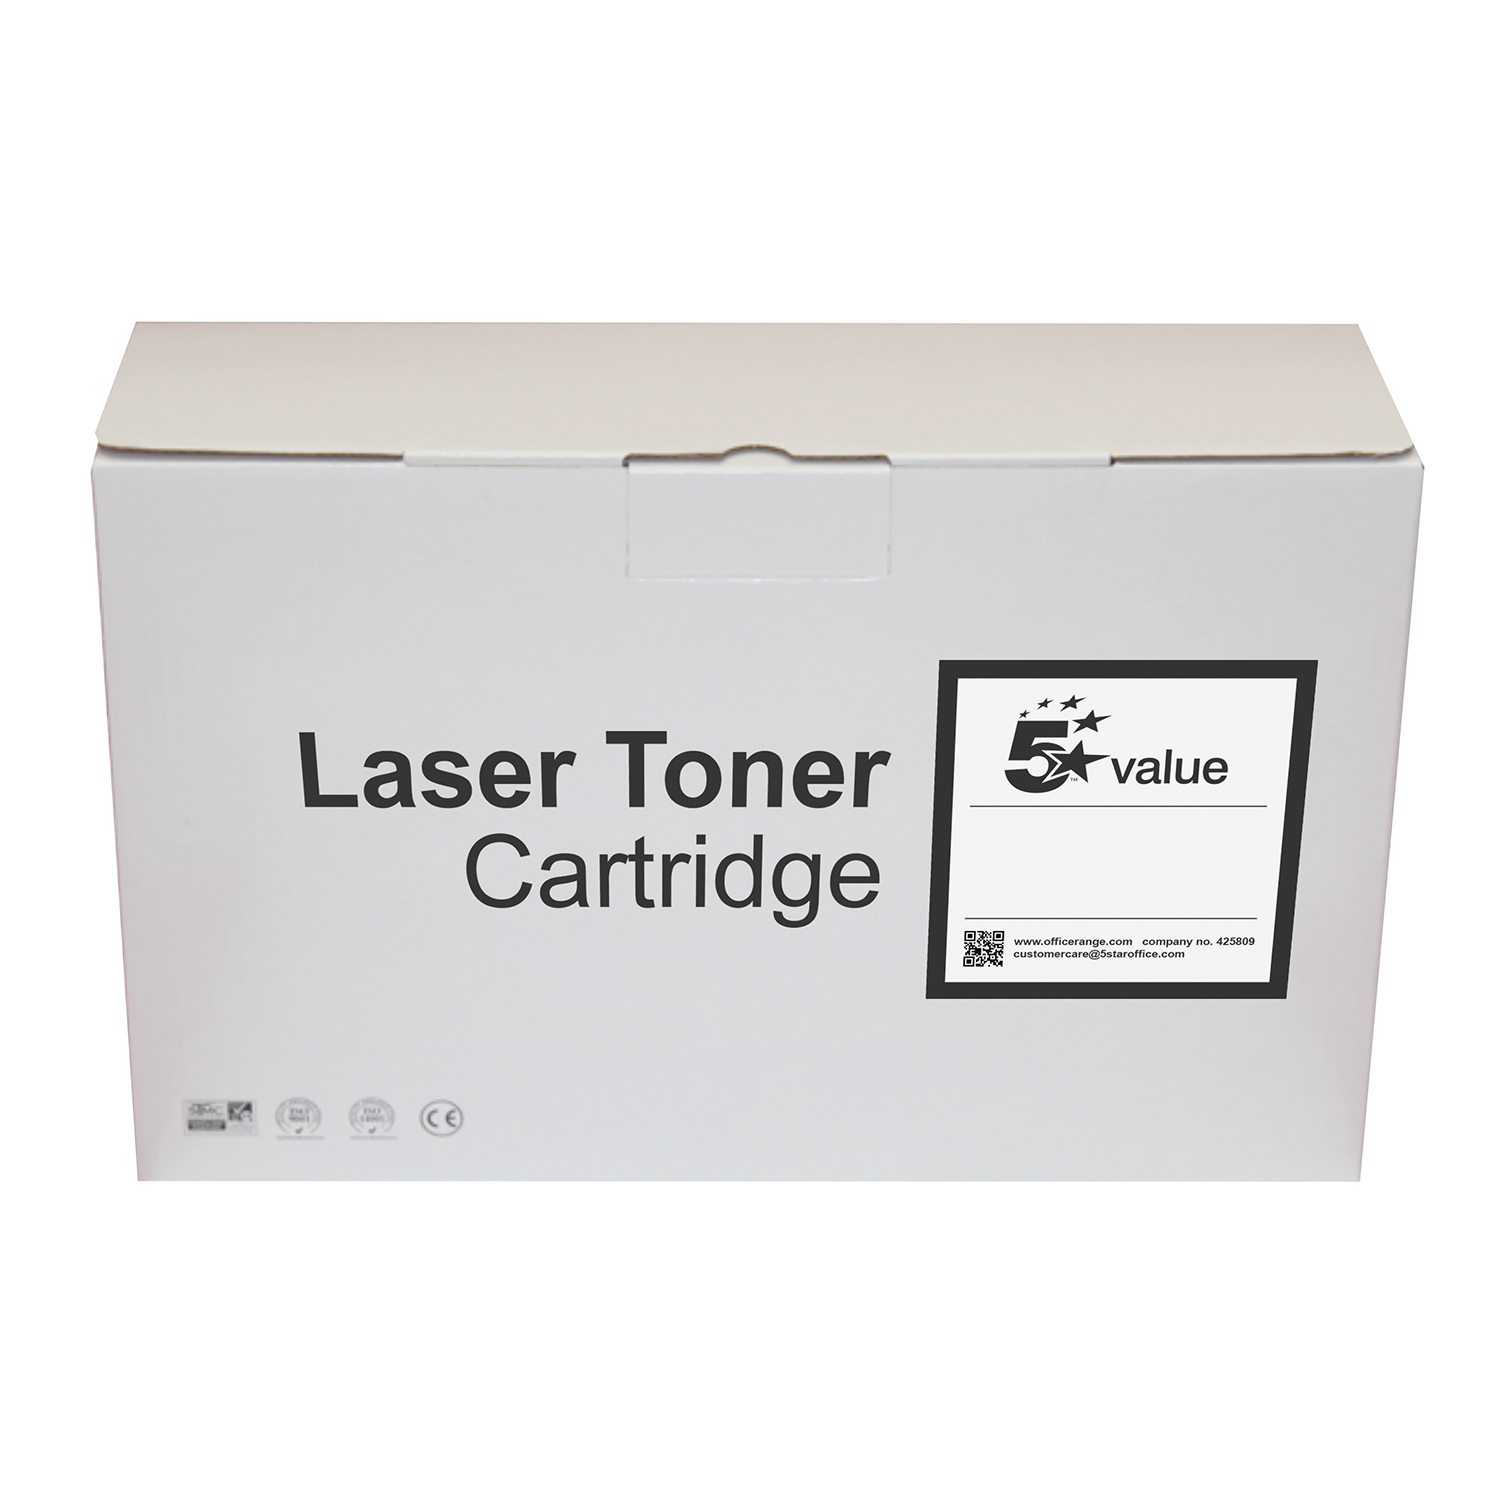 5 Star Value Remanufactured Laser Toner Cartridge Page Life 6500pp Black HP No. 05X CE505X Alternative